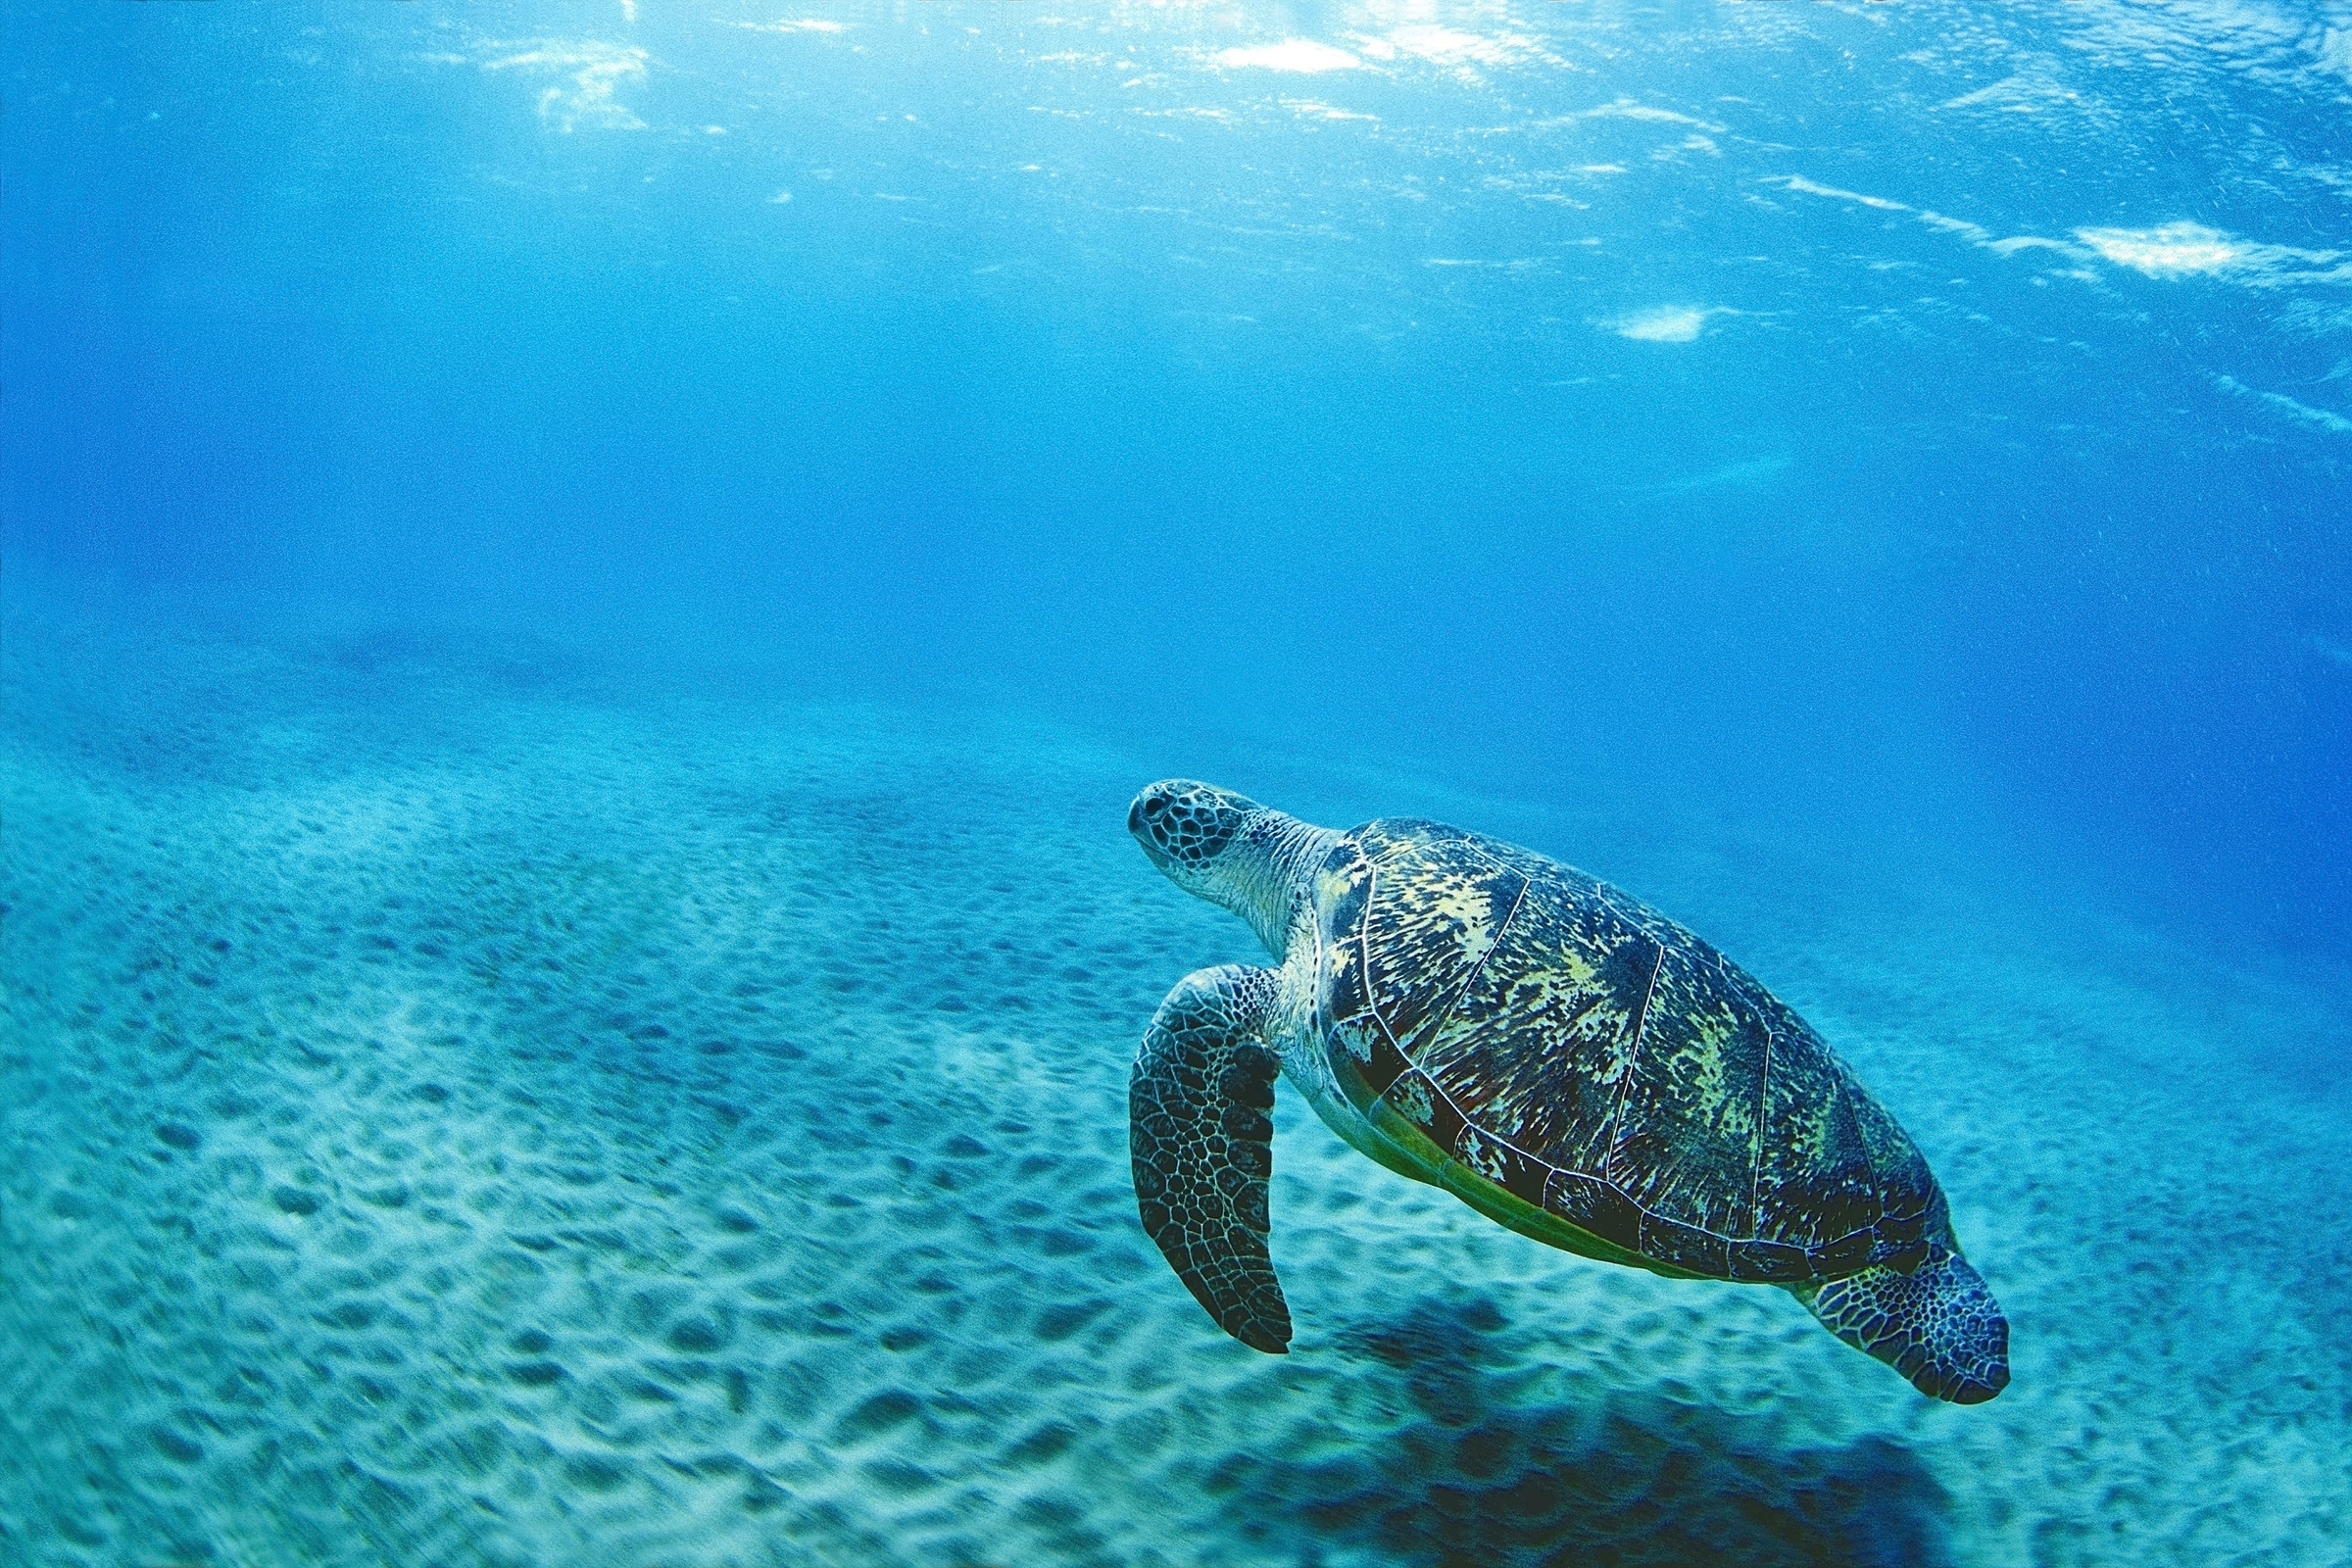 An Ocean of Benefit - Turtle Swimming